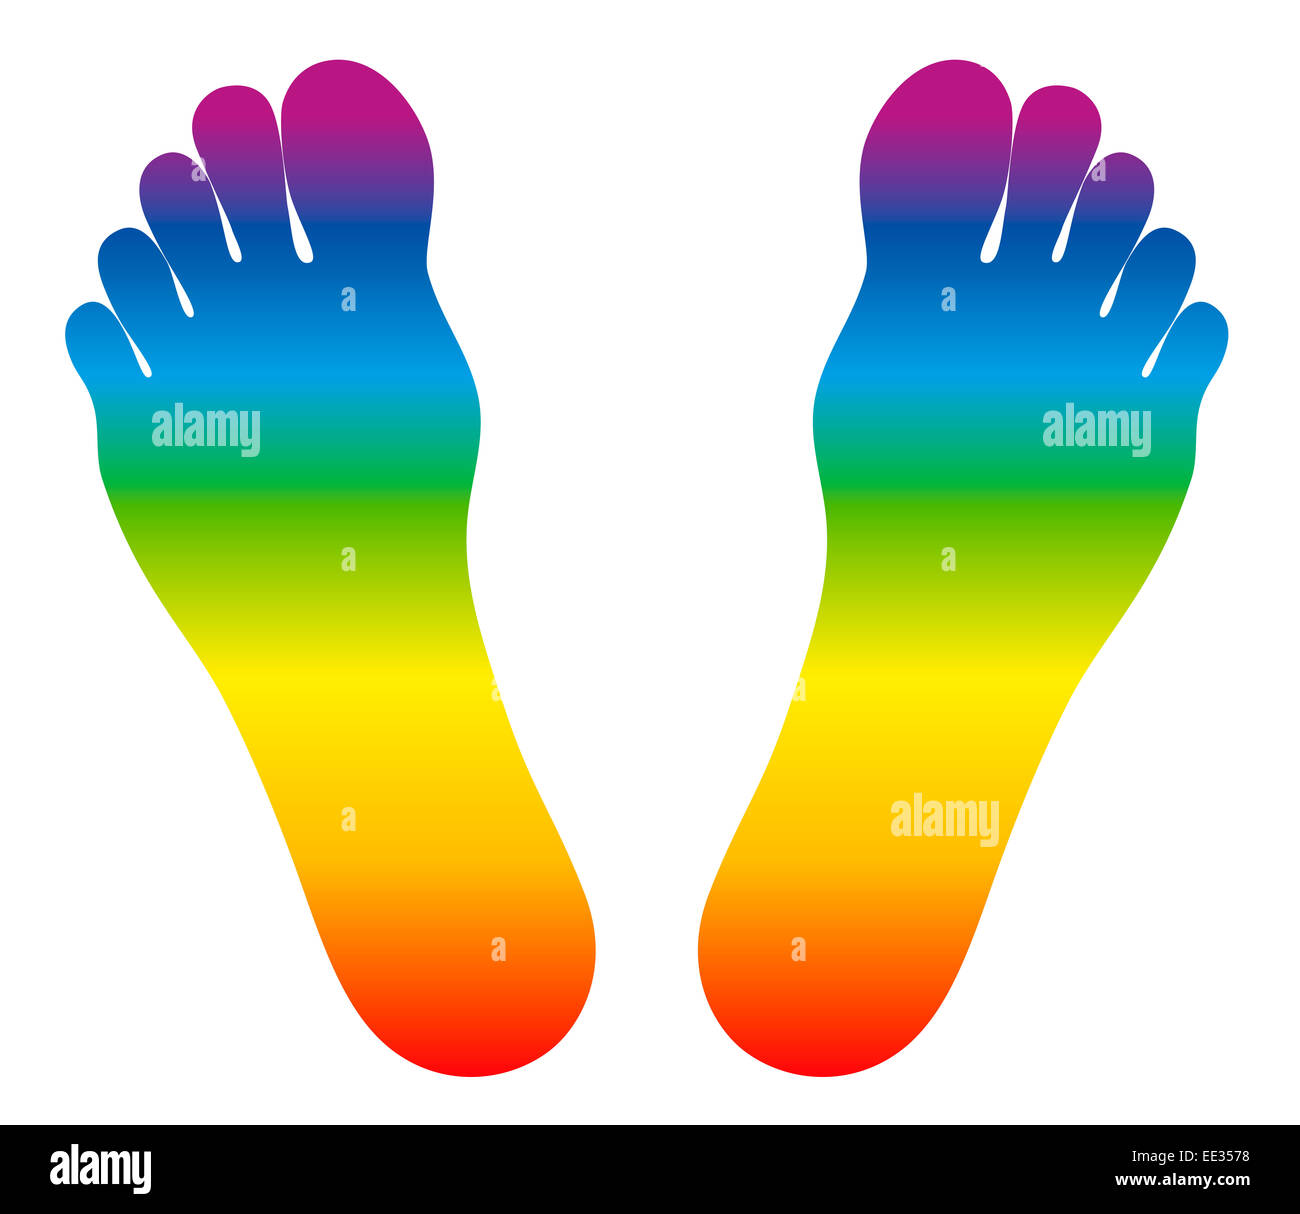 Feet that are rainbow colored as a symbol for health and wellbeing feet that are rainbow colored as a symbol for health and wellbeing biocorpaavc Gallery